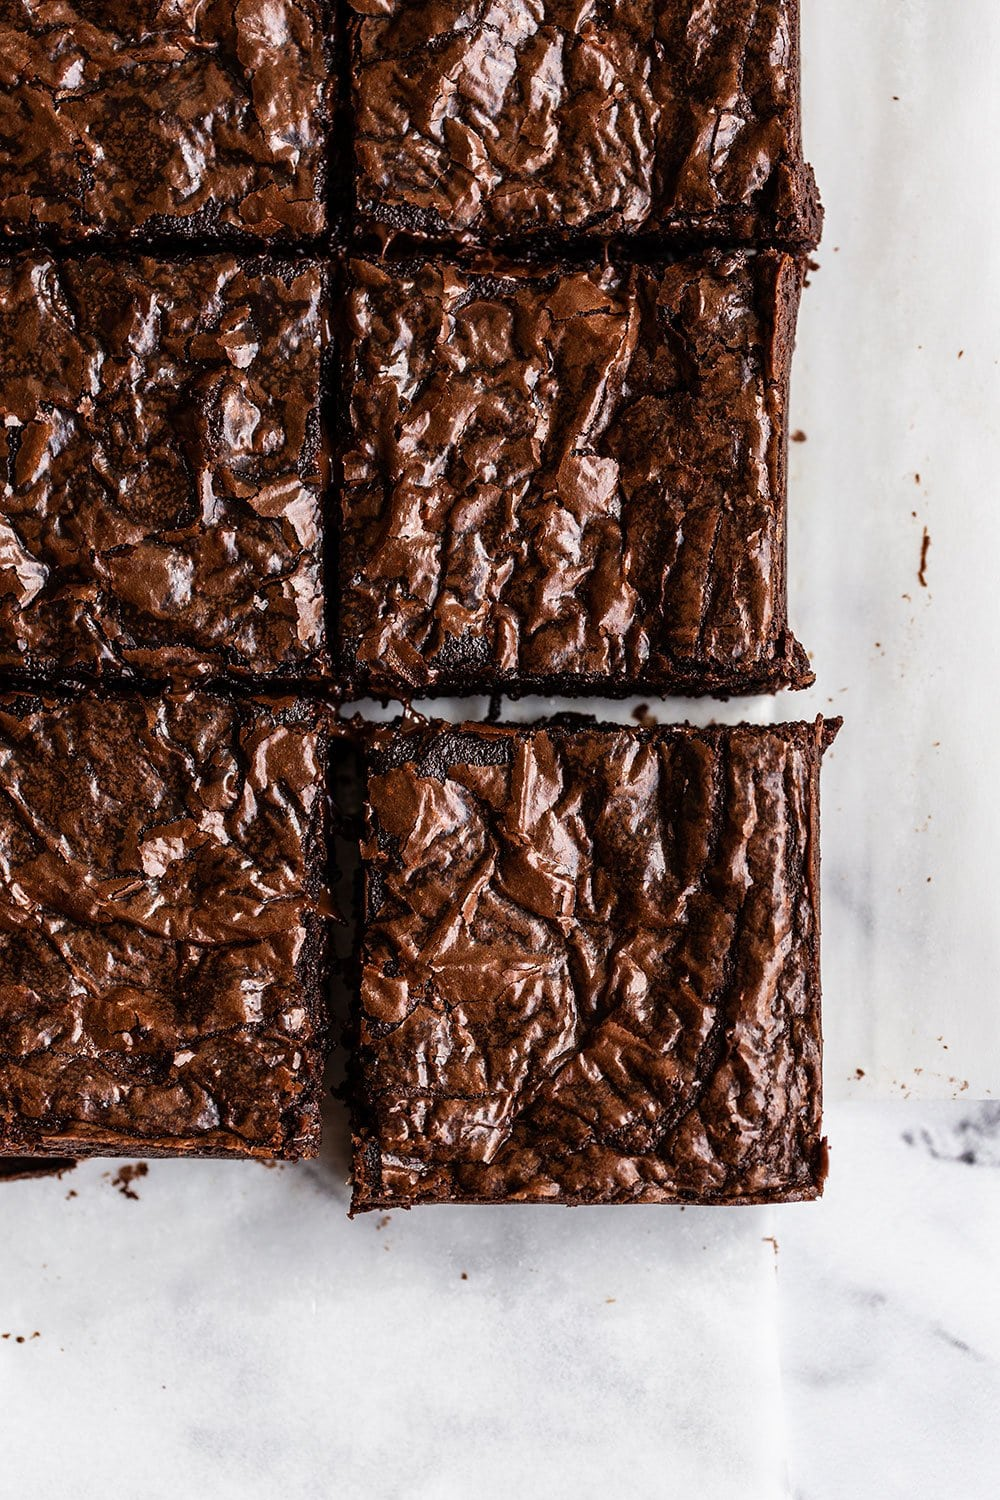 Brown butter brownies cut into squares